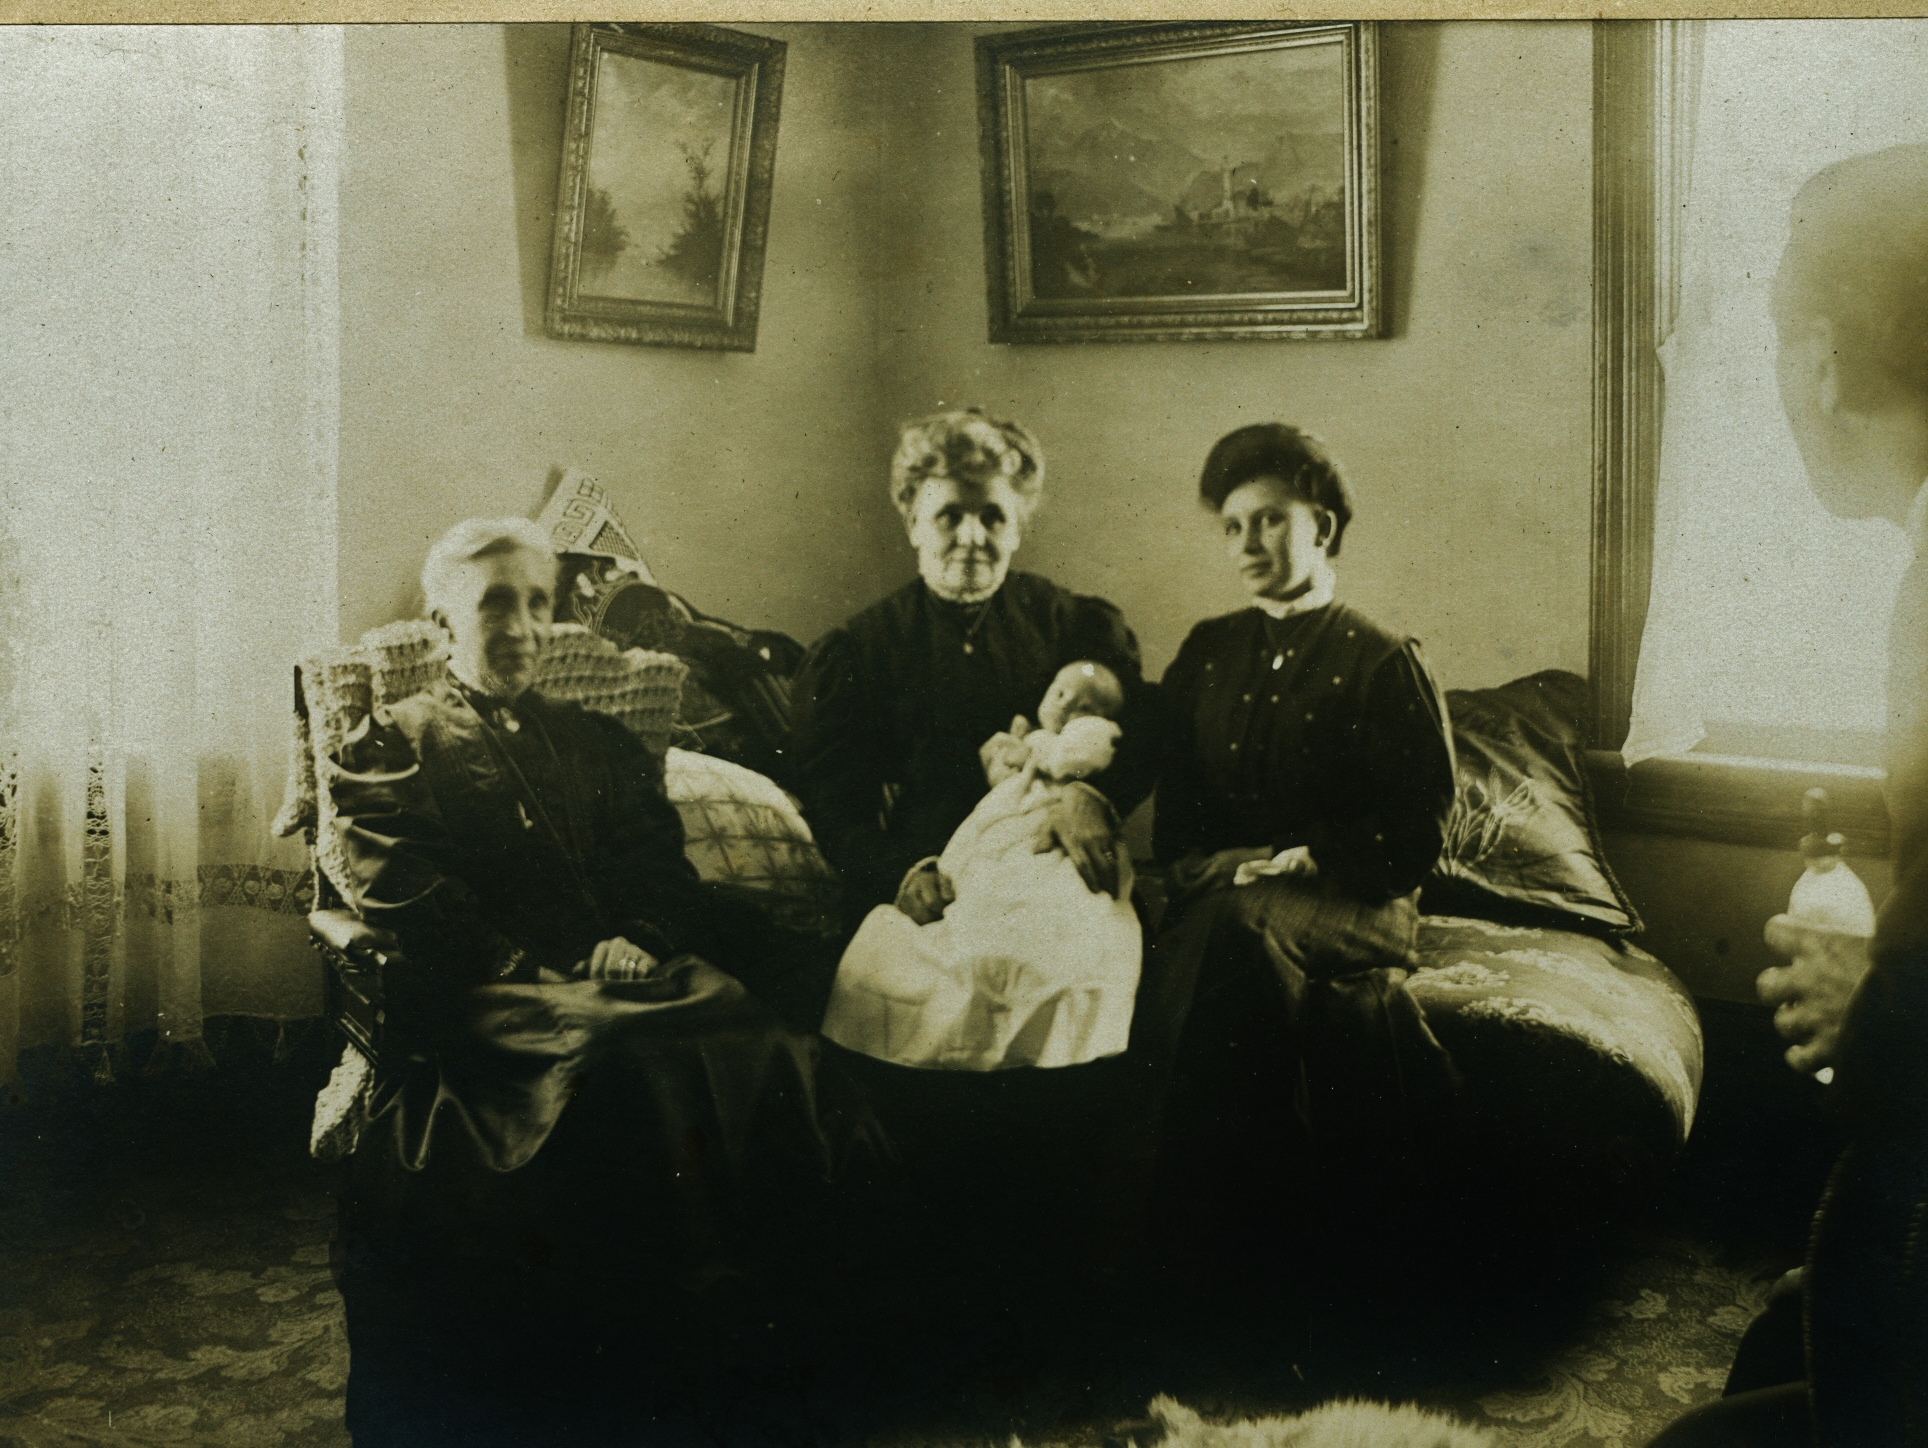 left   RUTH MEATH GLADNEY DEVLIN (RUTH'S FIRST MARRIAGE TO EDW. GLADNEY AND RUTH'S SECOND MARRIAGE TO JOHN DEVLIN).                                        Centre:  Mary Mills Gladney (later carscallen)      Right:  Cora Gladney Hodge       Baby Glad Hodge  Mary Mills was married twice also, first to William Edward Gladney and then to A.W. Carscallen.